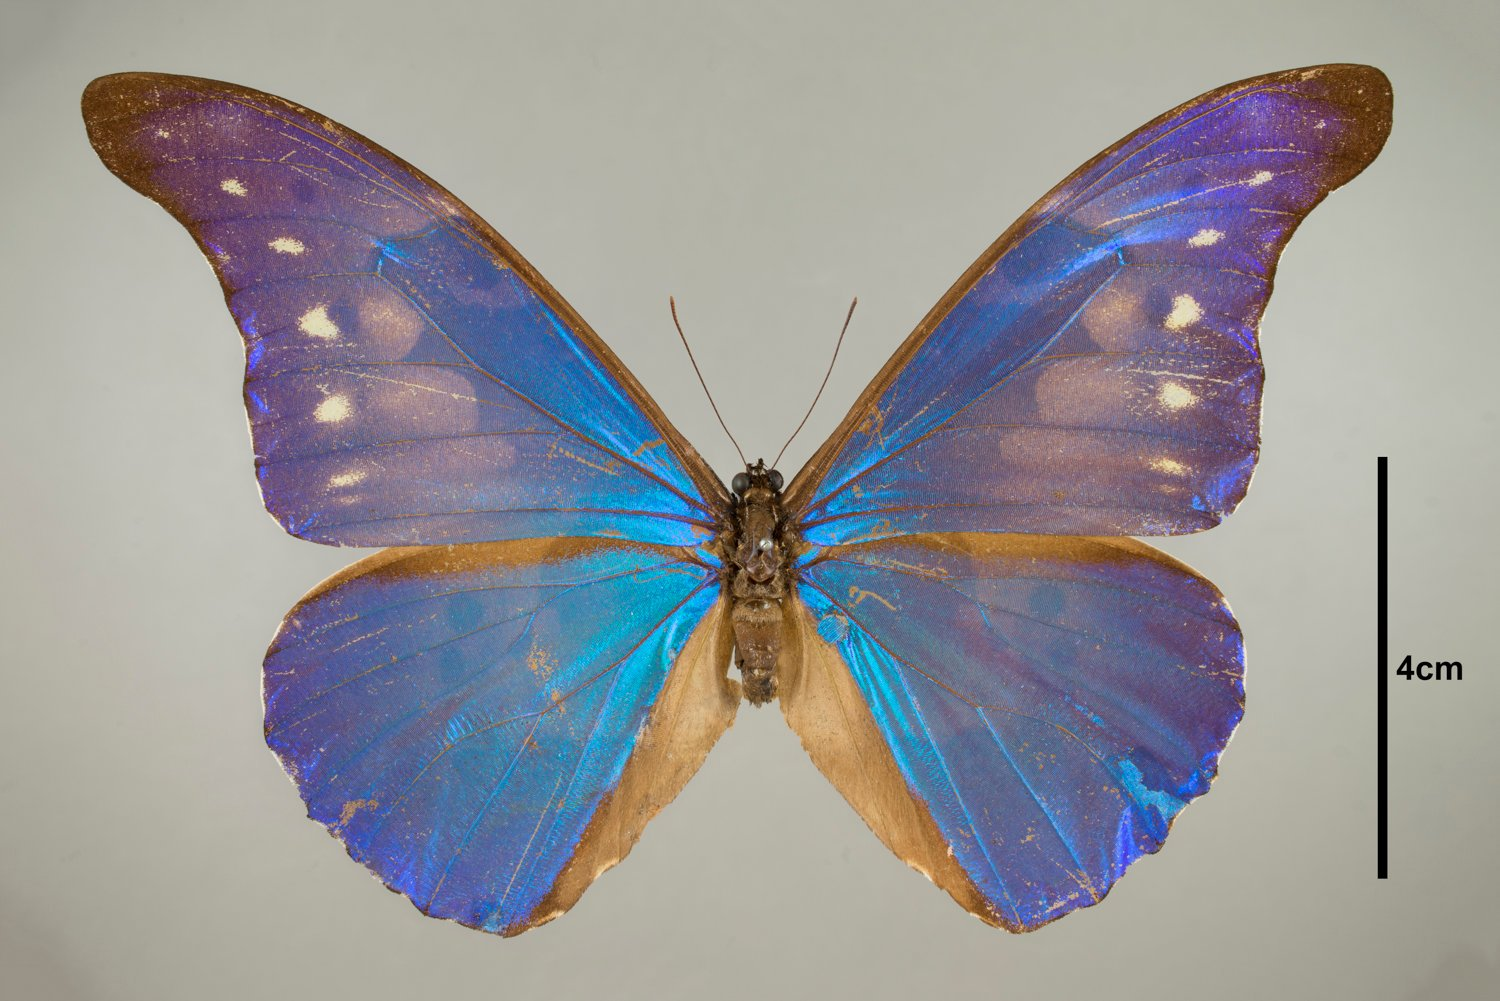 Butterfly from the Field's Insects collection (Courtesy of the Field Museum)